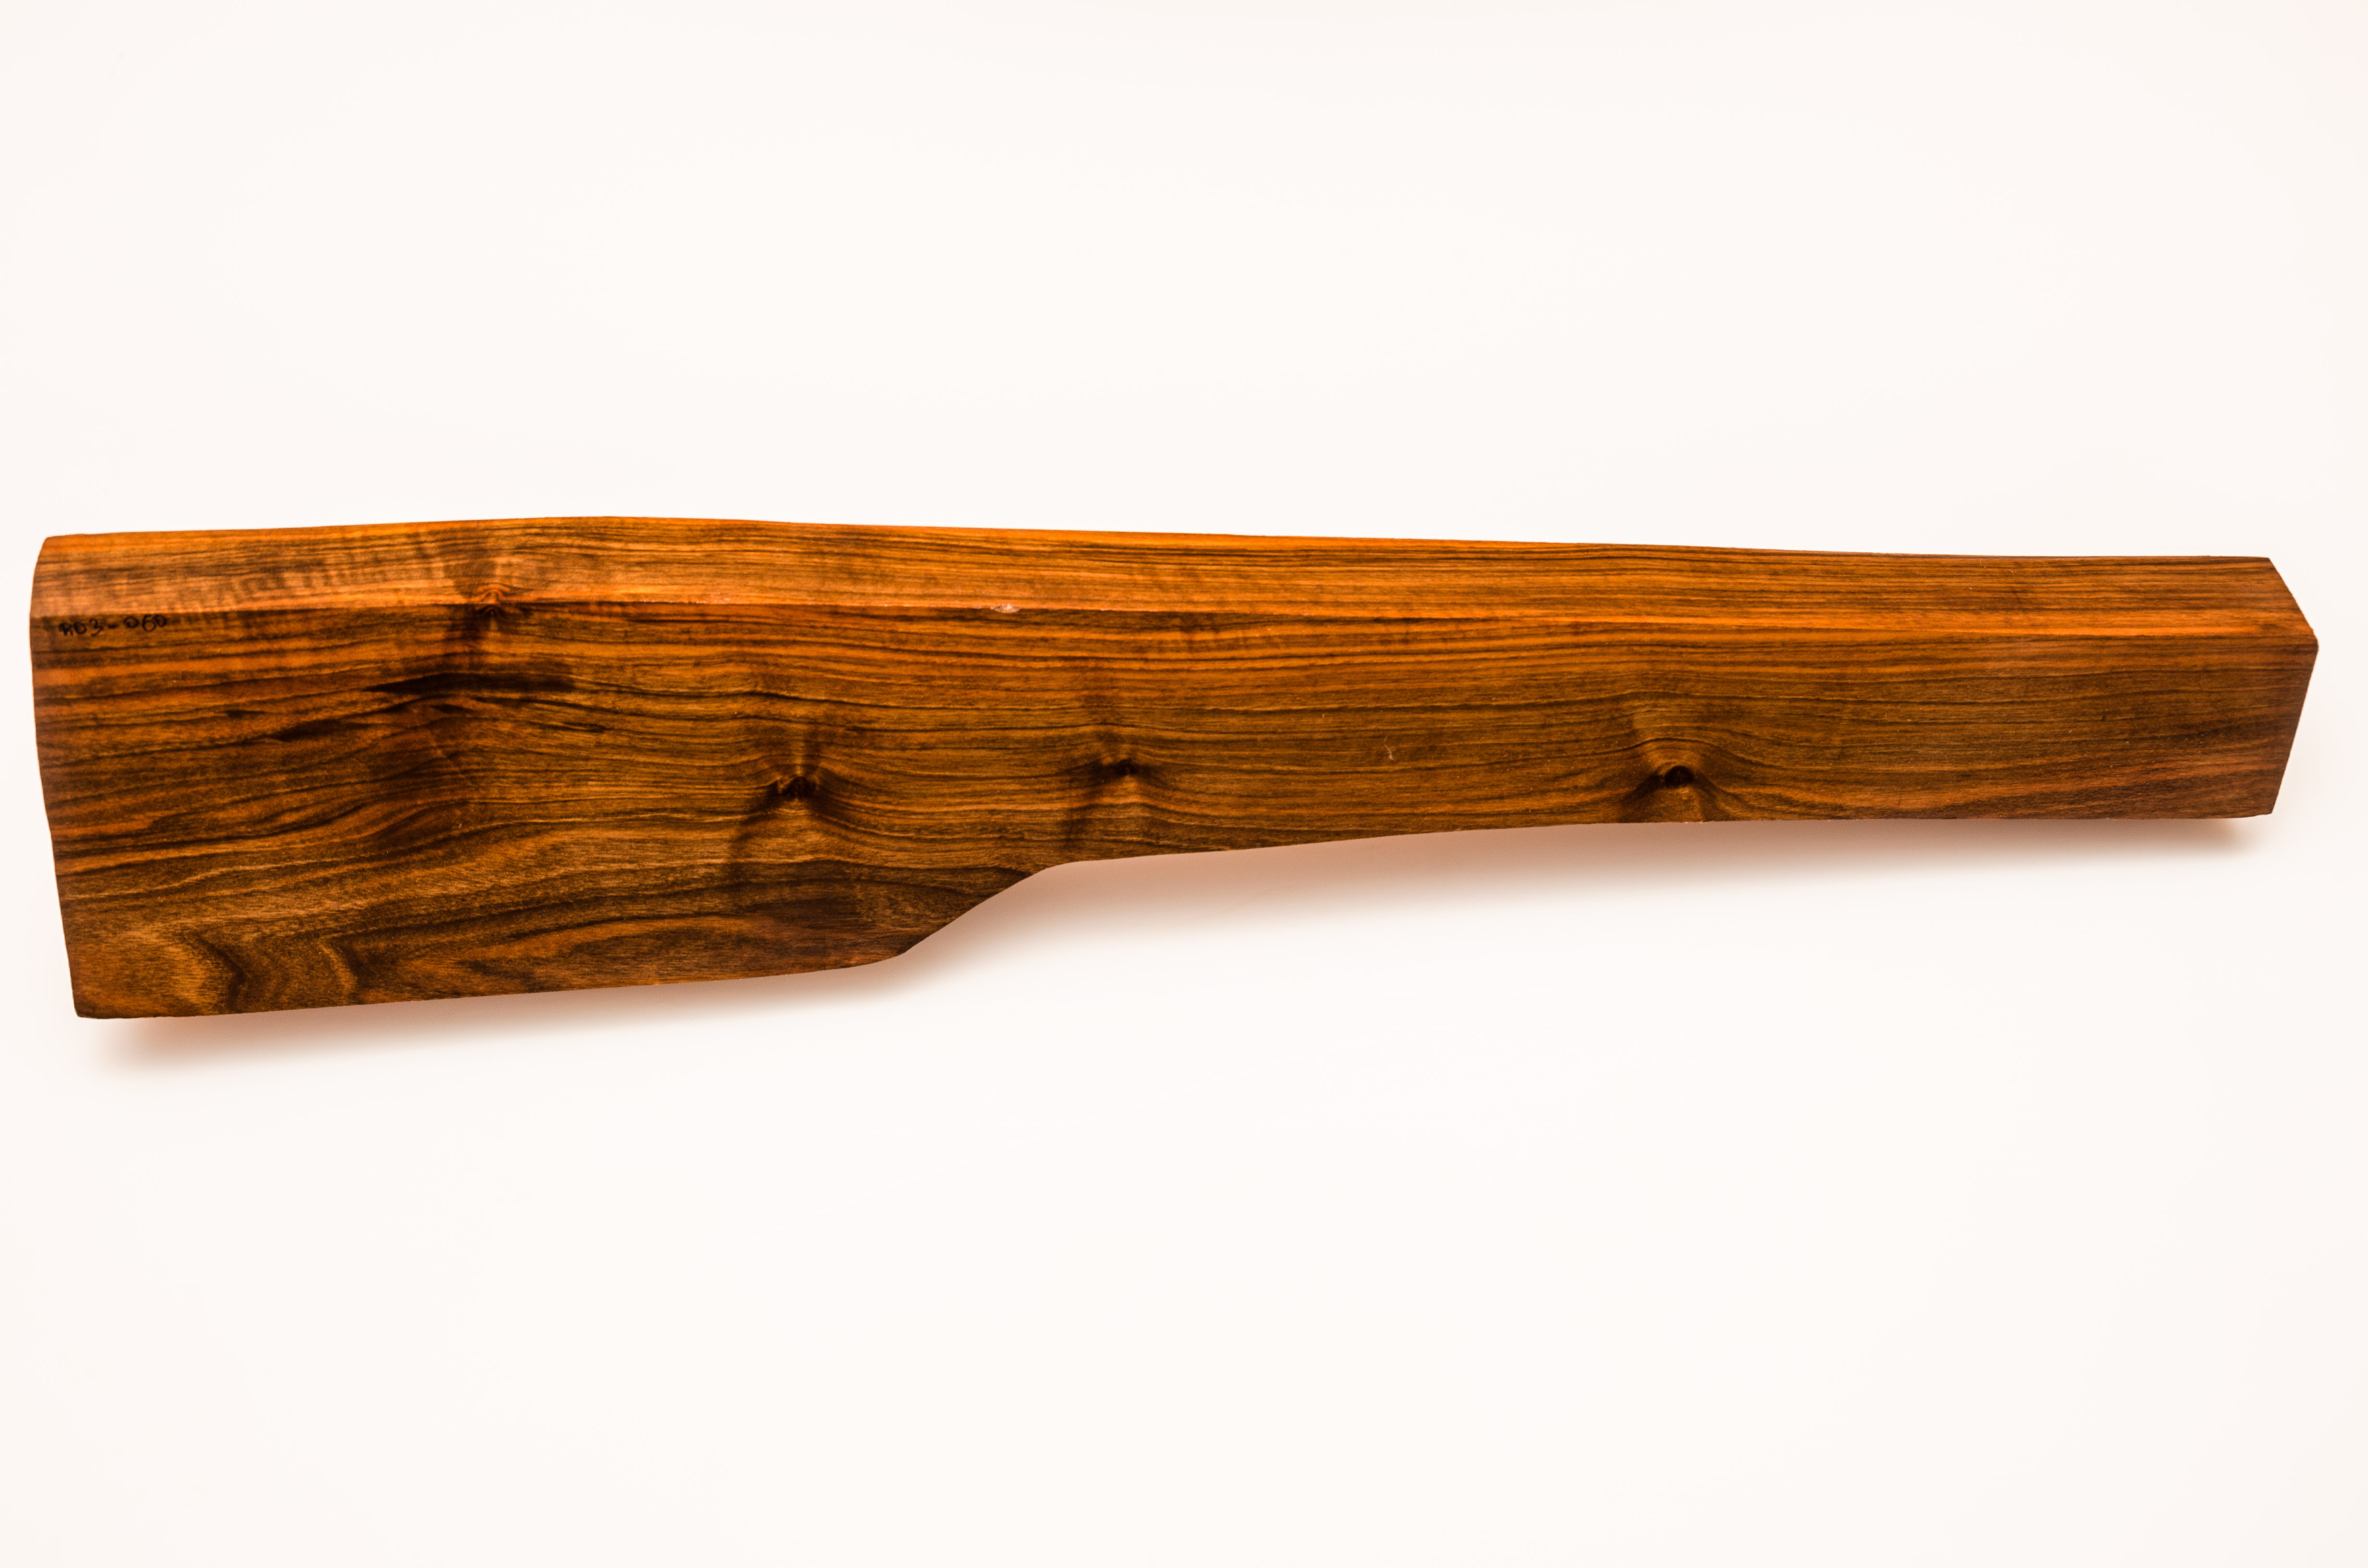 walnut_stock_blanks_for_guns_and_rifles-1196